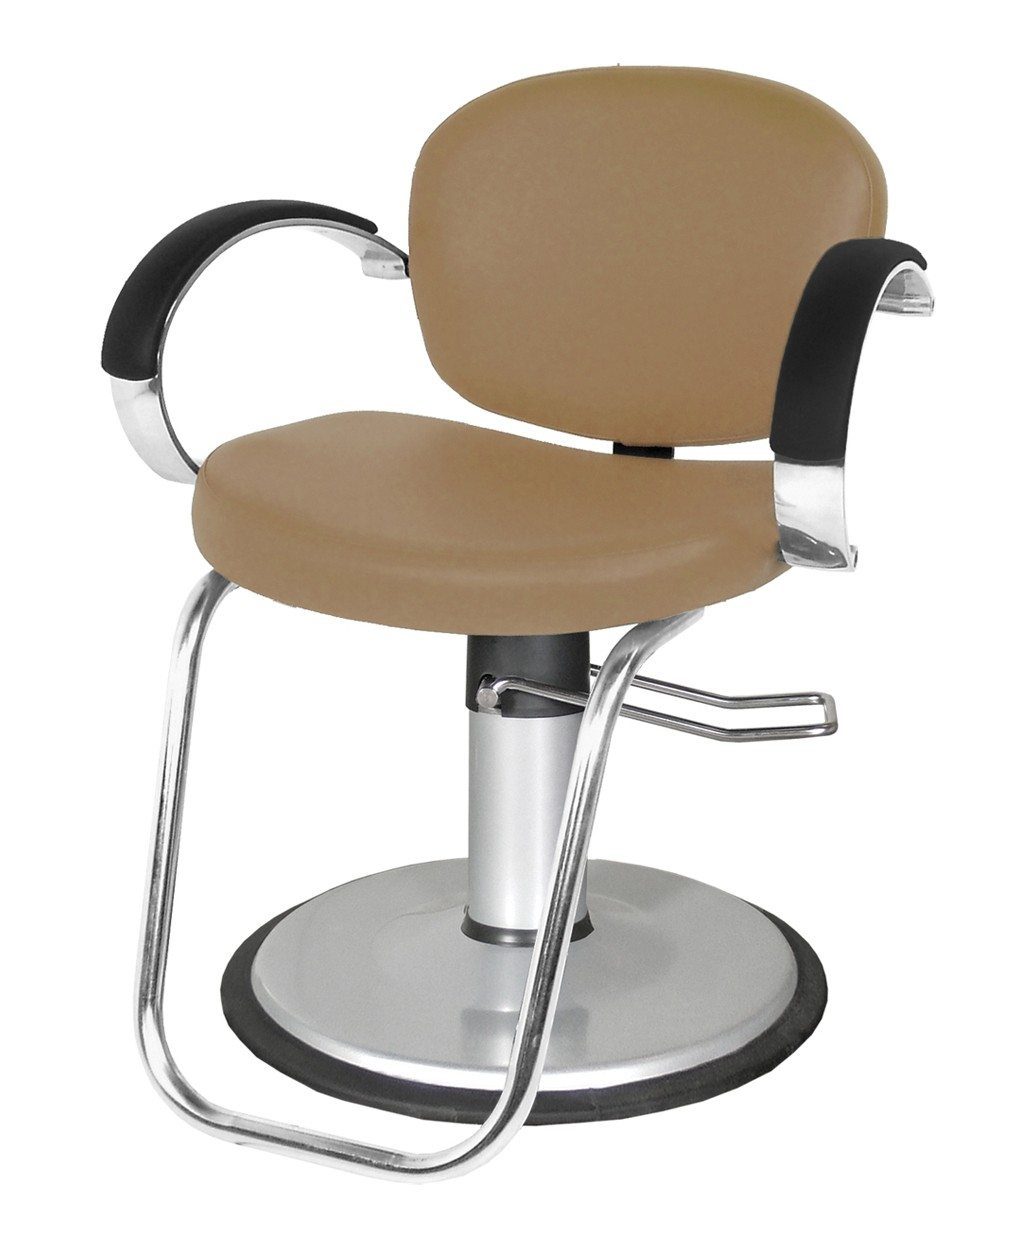 Collins QSE 1300 Valenti Styling Chair